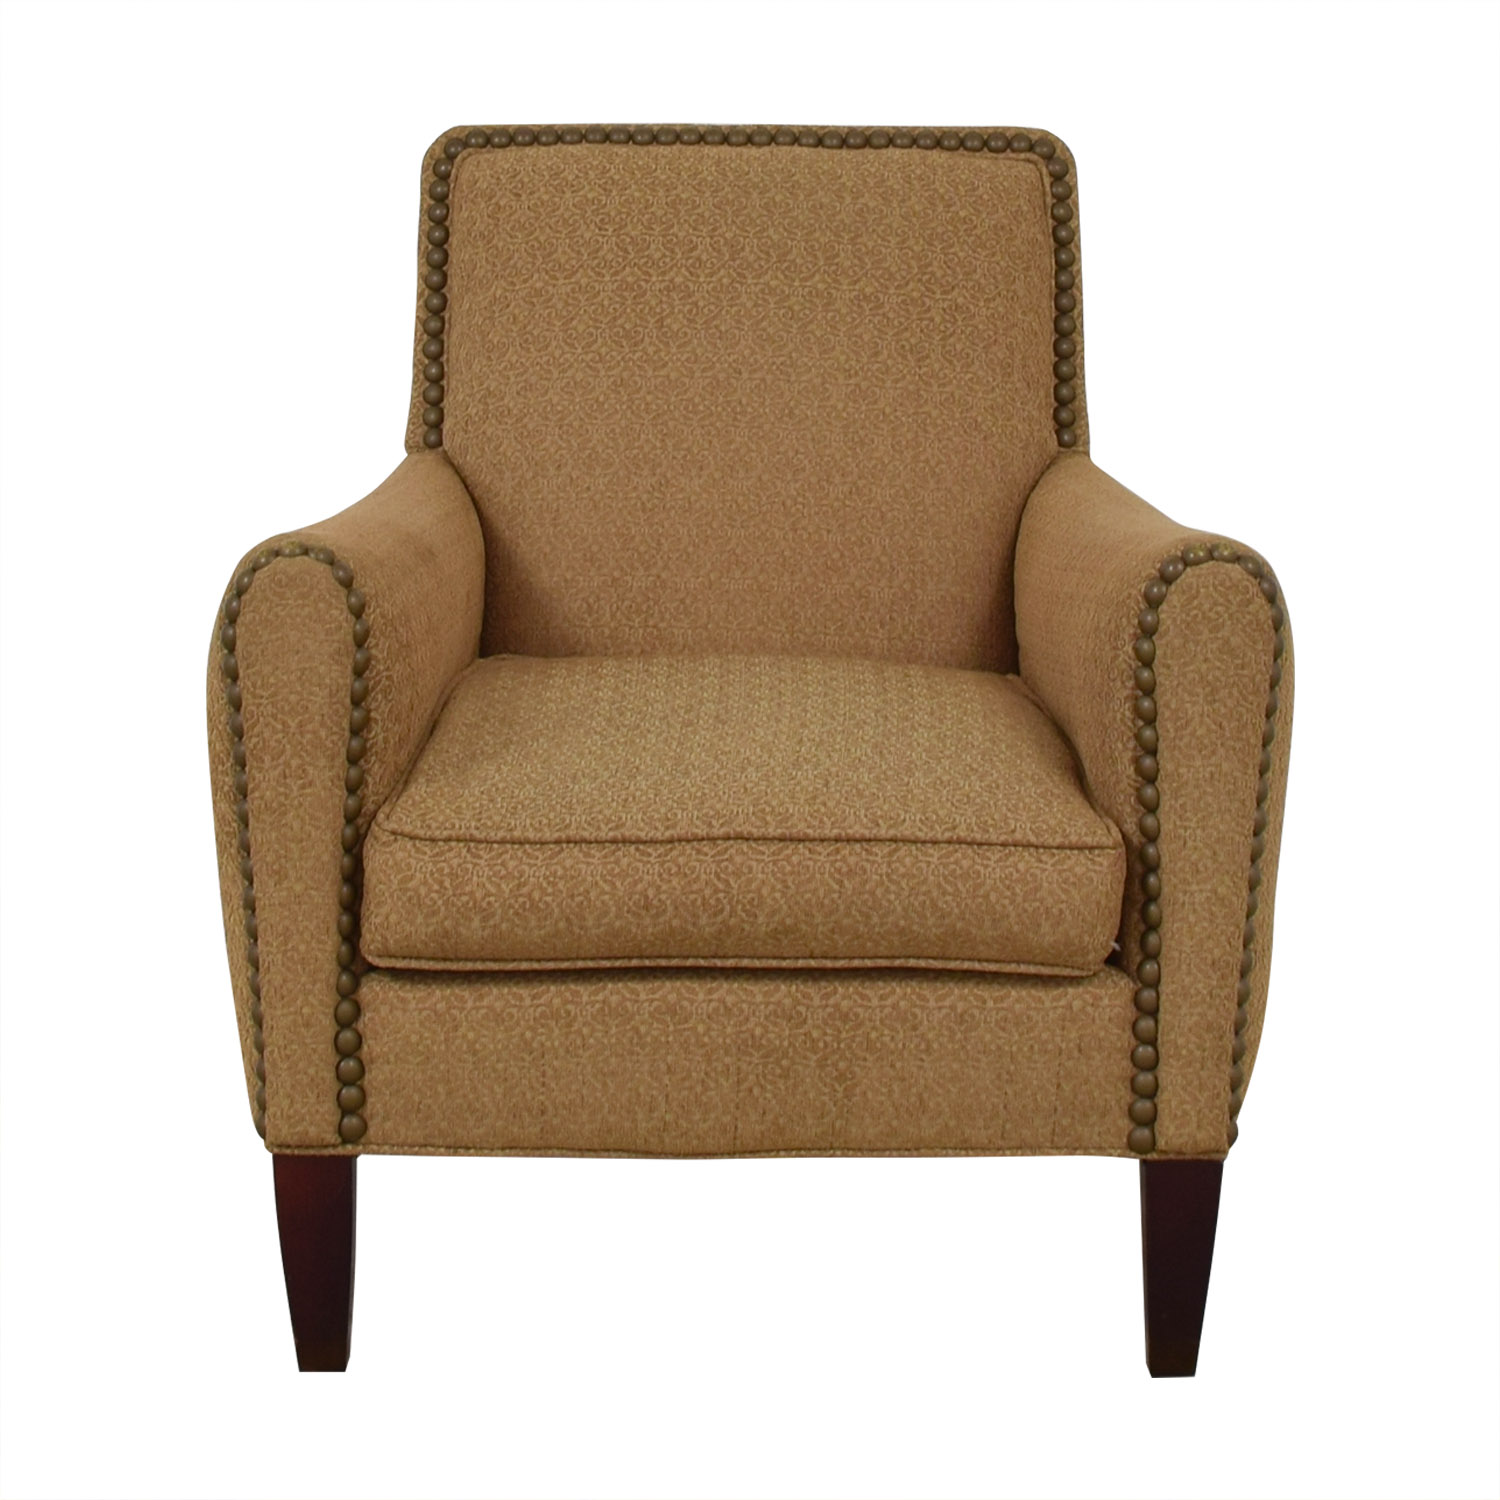 Lee Industries Lee Industries Nailhead Upholstered Armchair for sale